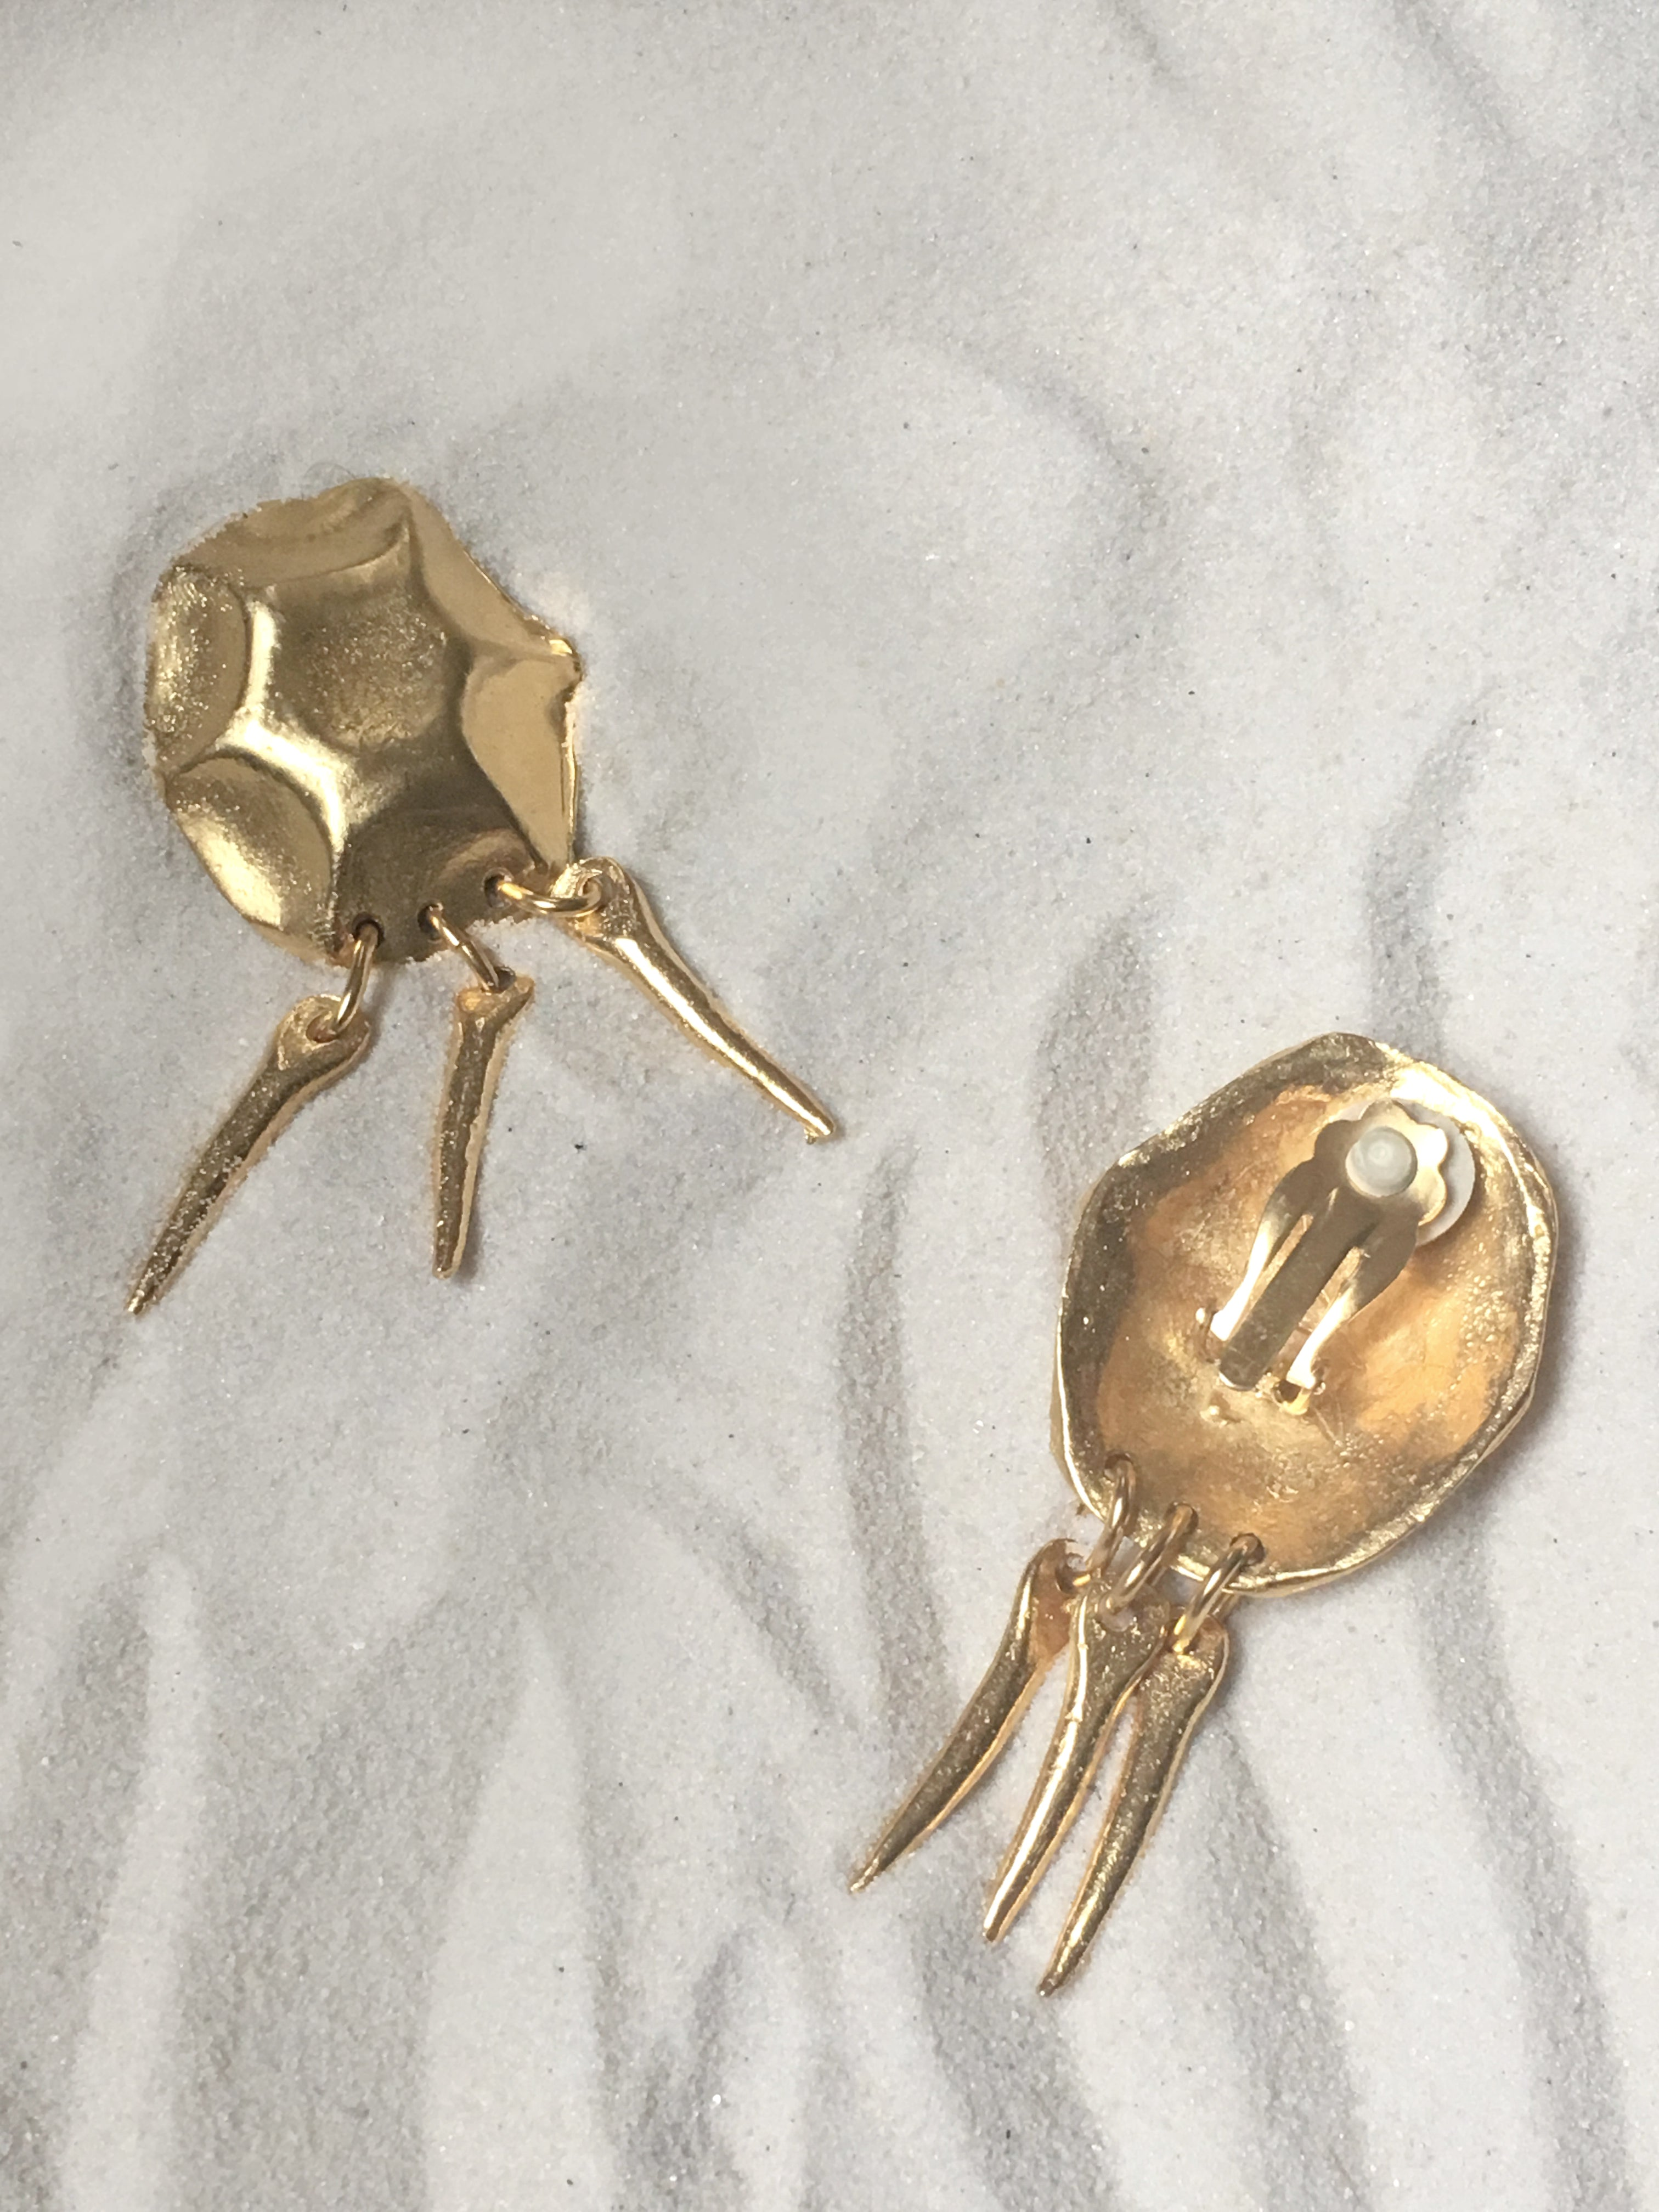 Brilliant gold coated metal earrings from the mid 1980s. A modern take on antiquity- a molded, creased oval holds three dangling tooth spikes held with oval rings. Clip on backing.